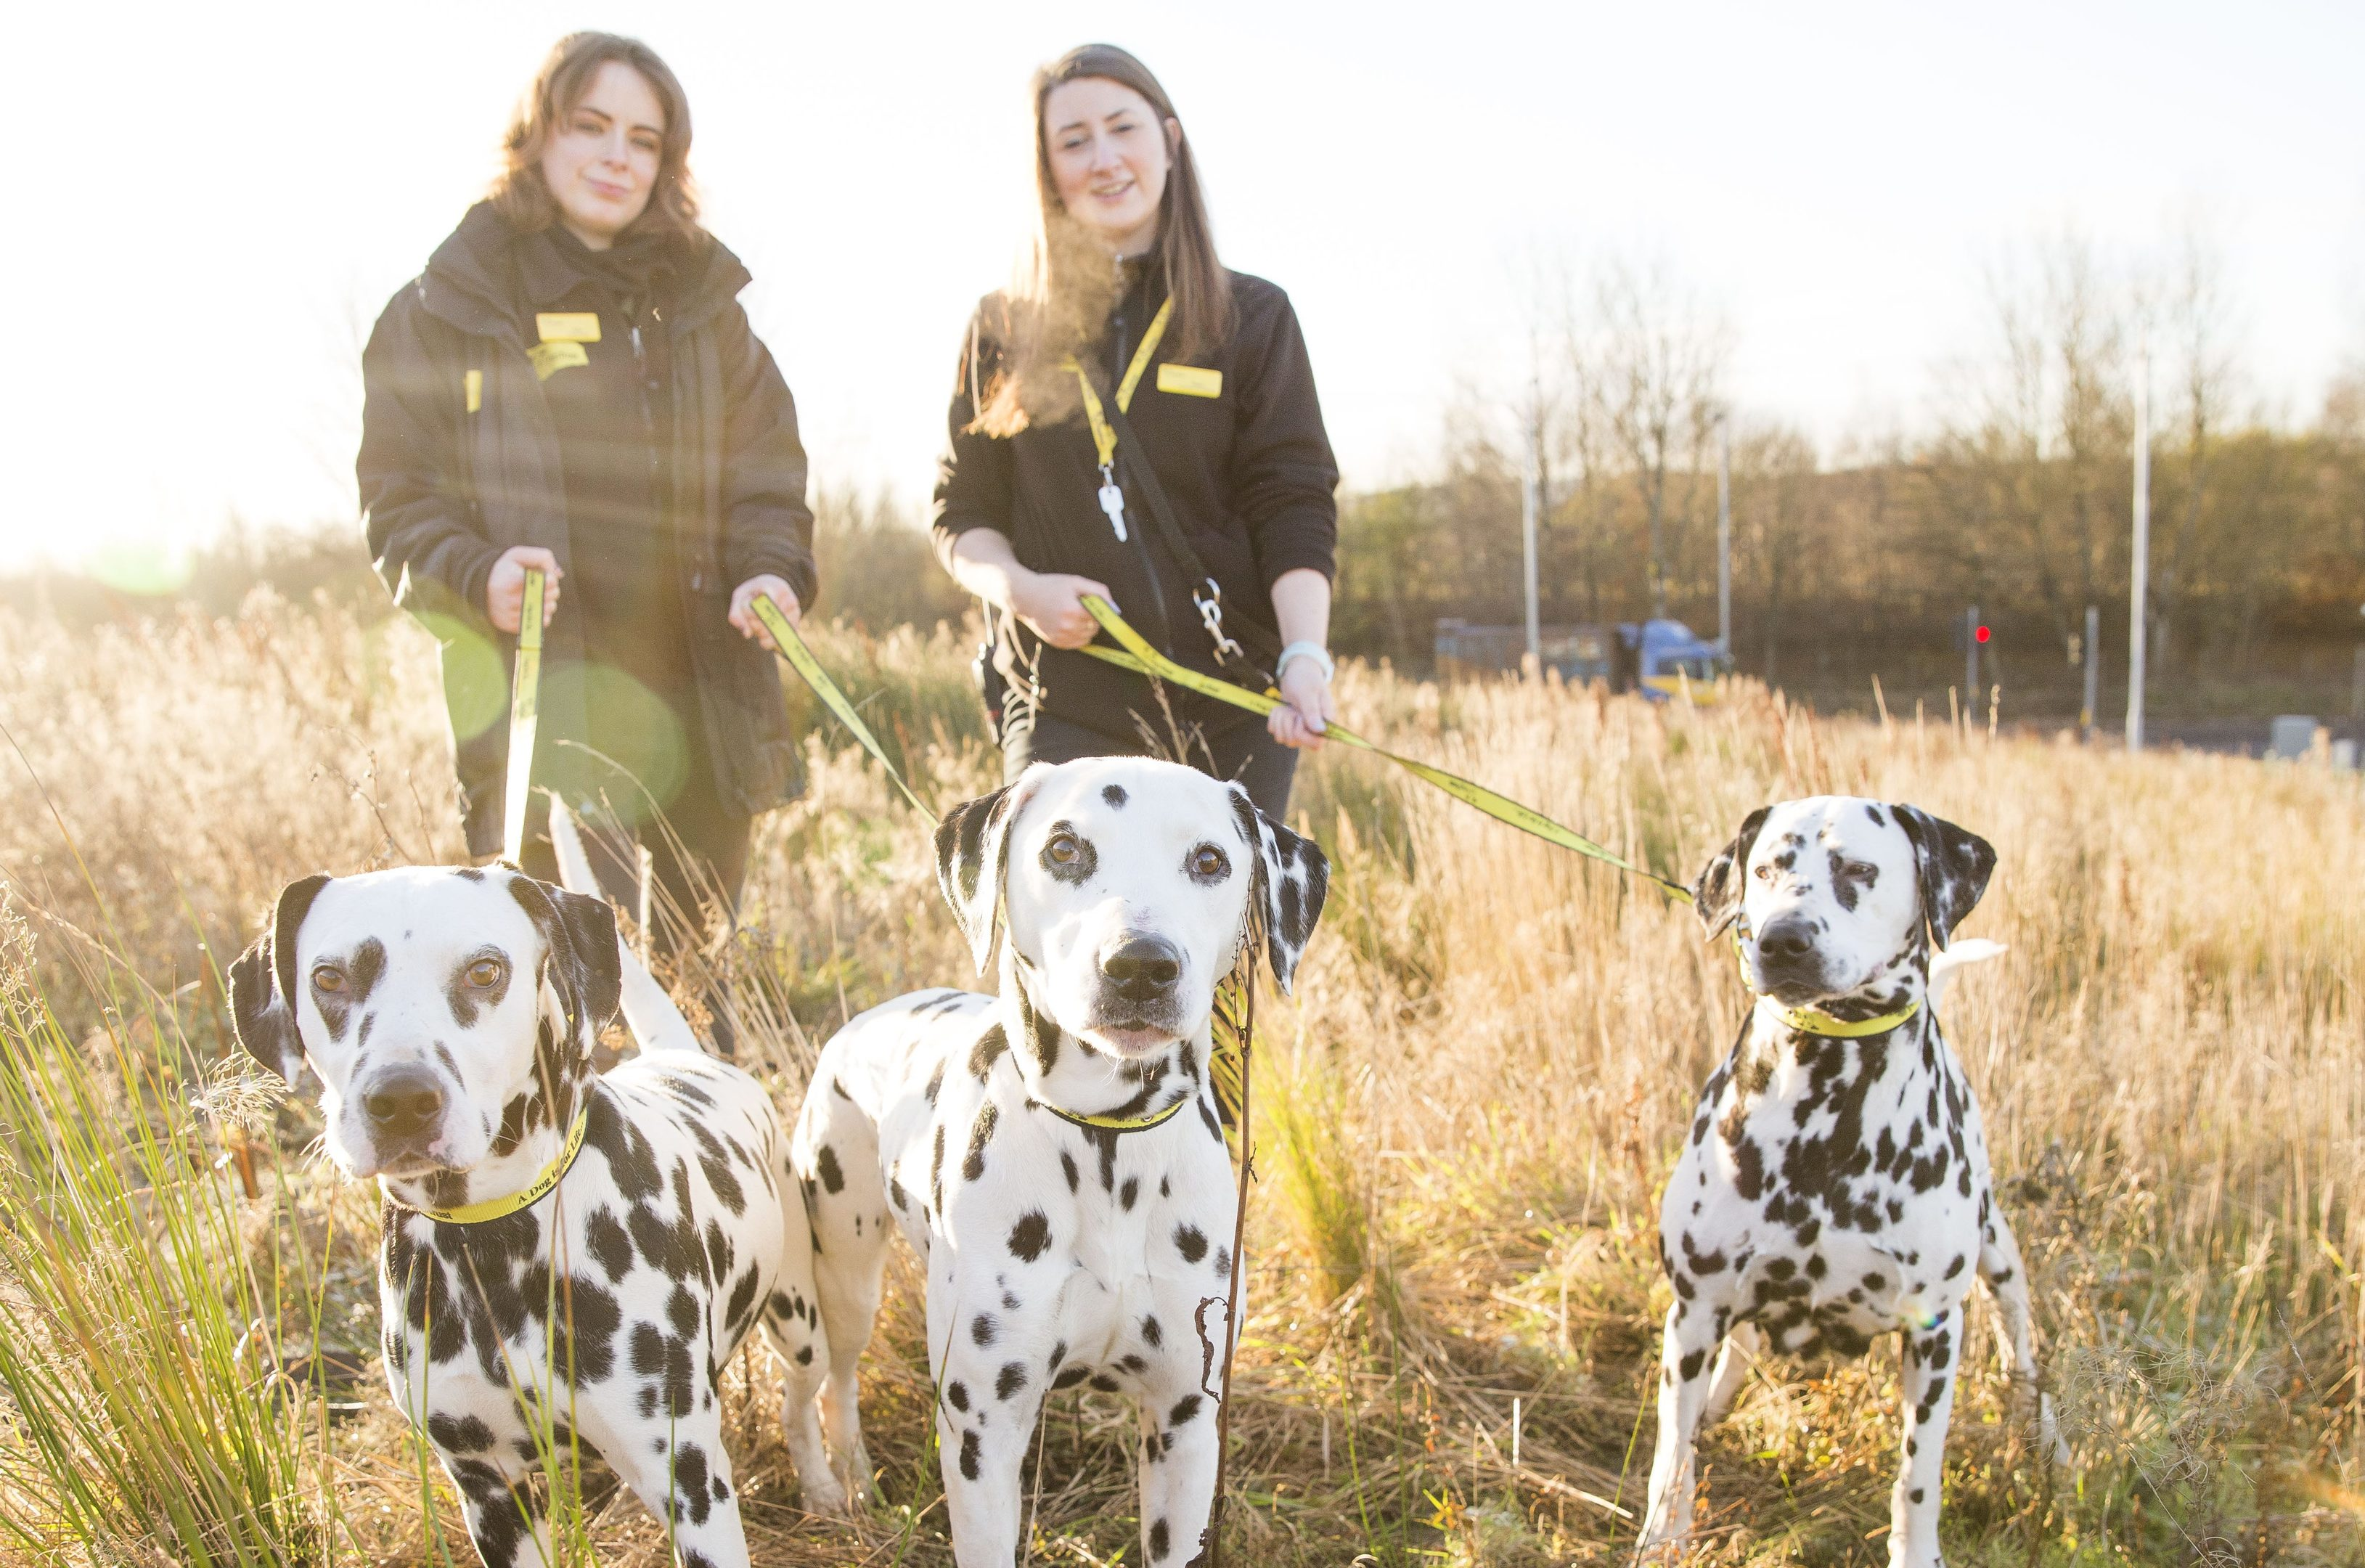 Dogs Trust Glasgow warning about dogs being abandoned before Christmas after 3 Dalmatians where left in a street in Ayrshire named now Oreo, Bell and Jingle with Helyn Nichol & Megan Cocks (Jamie Williamson)